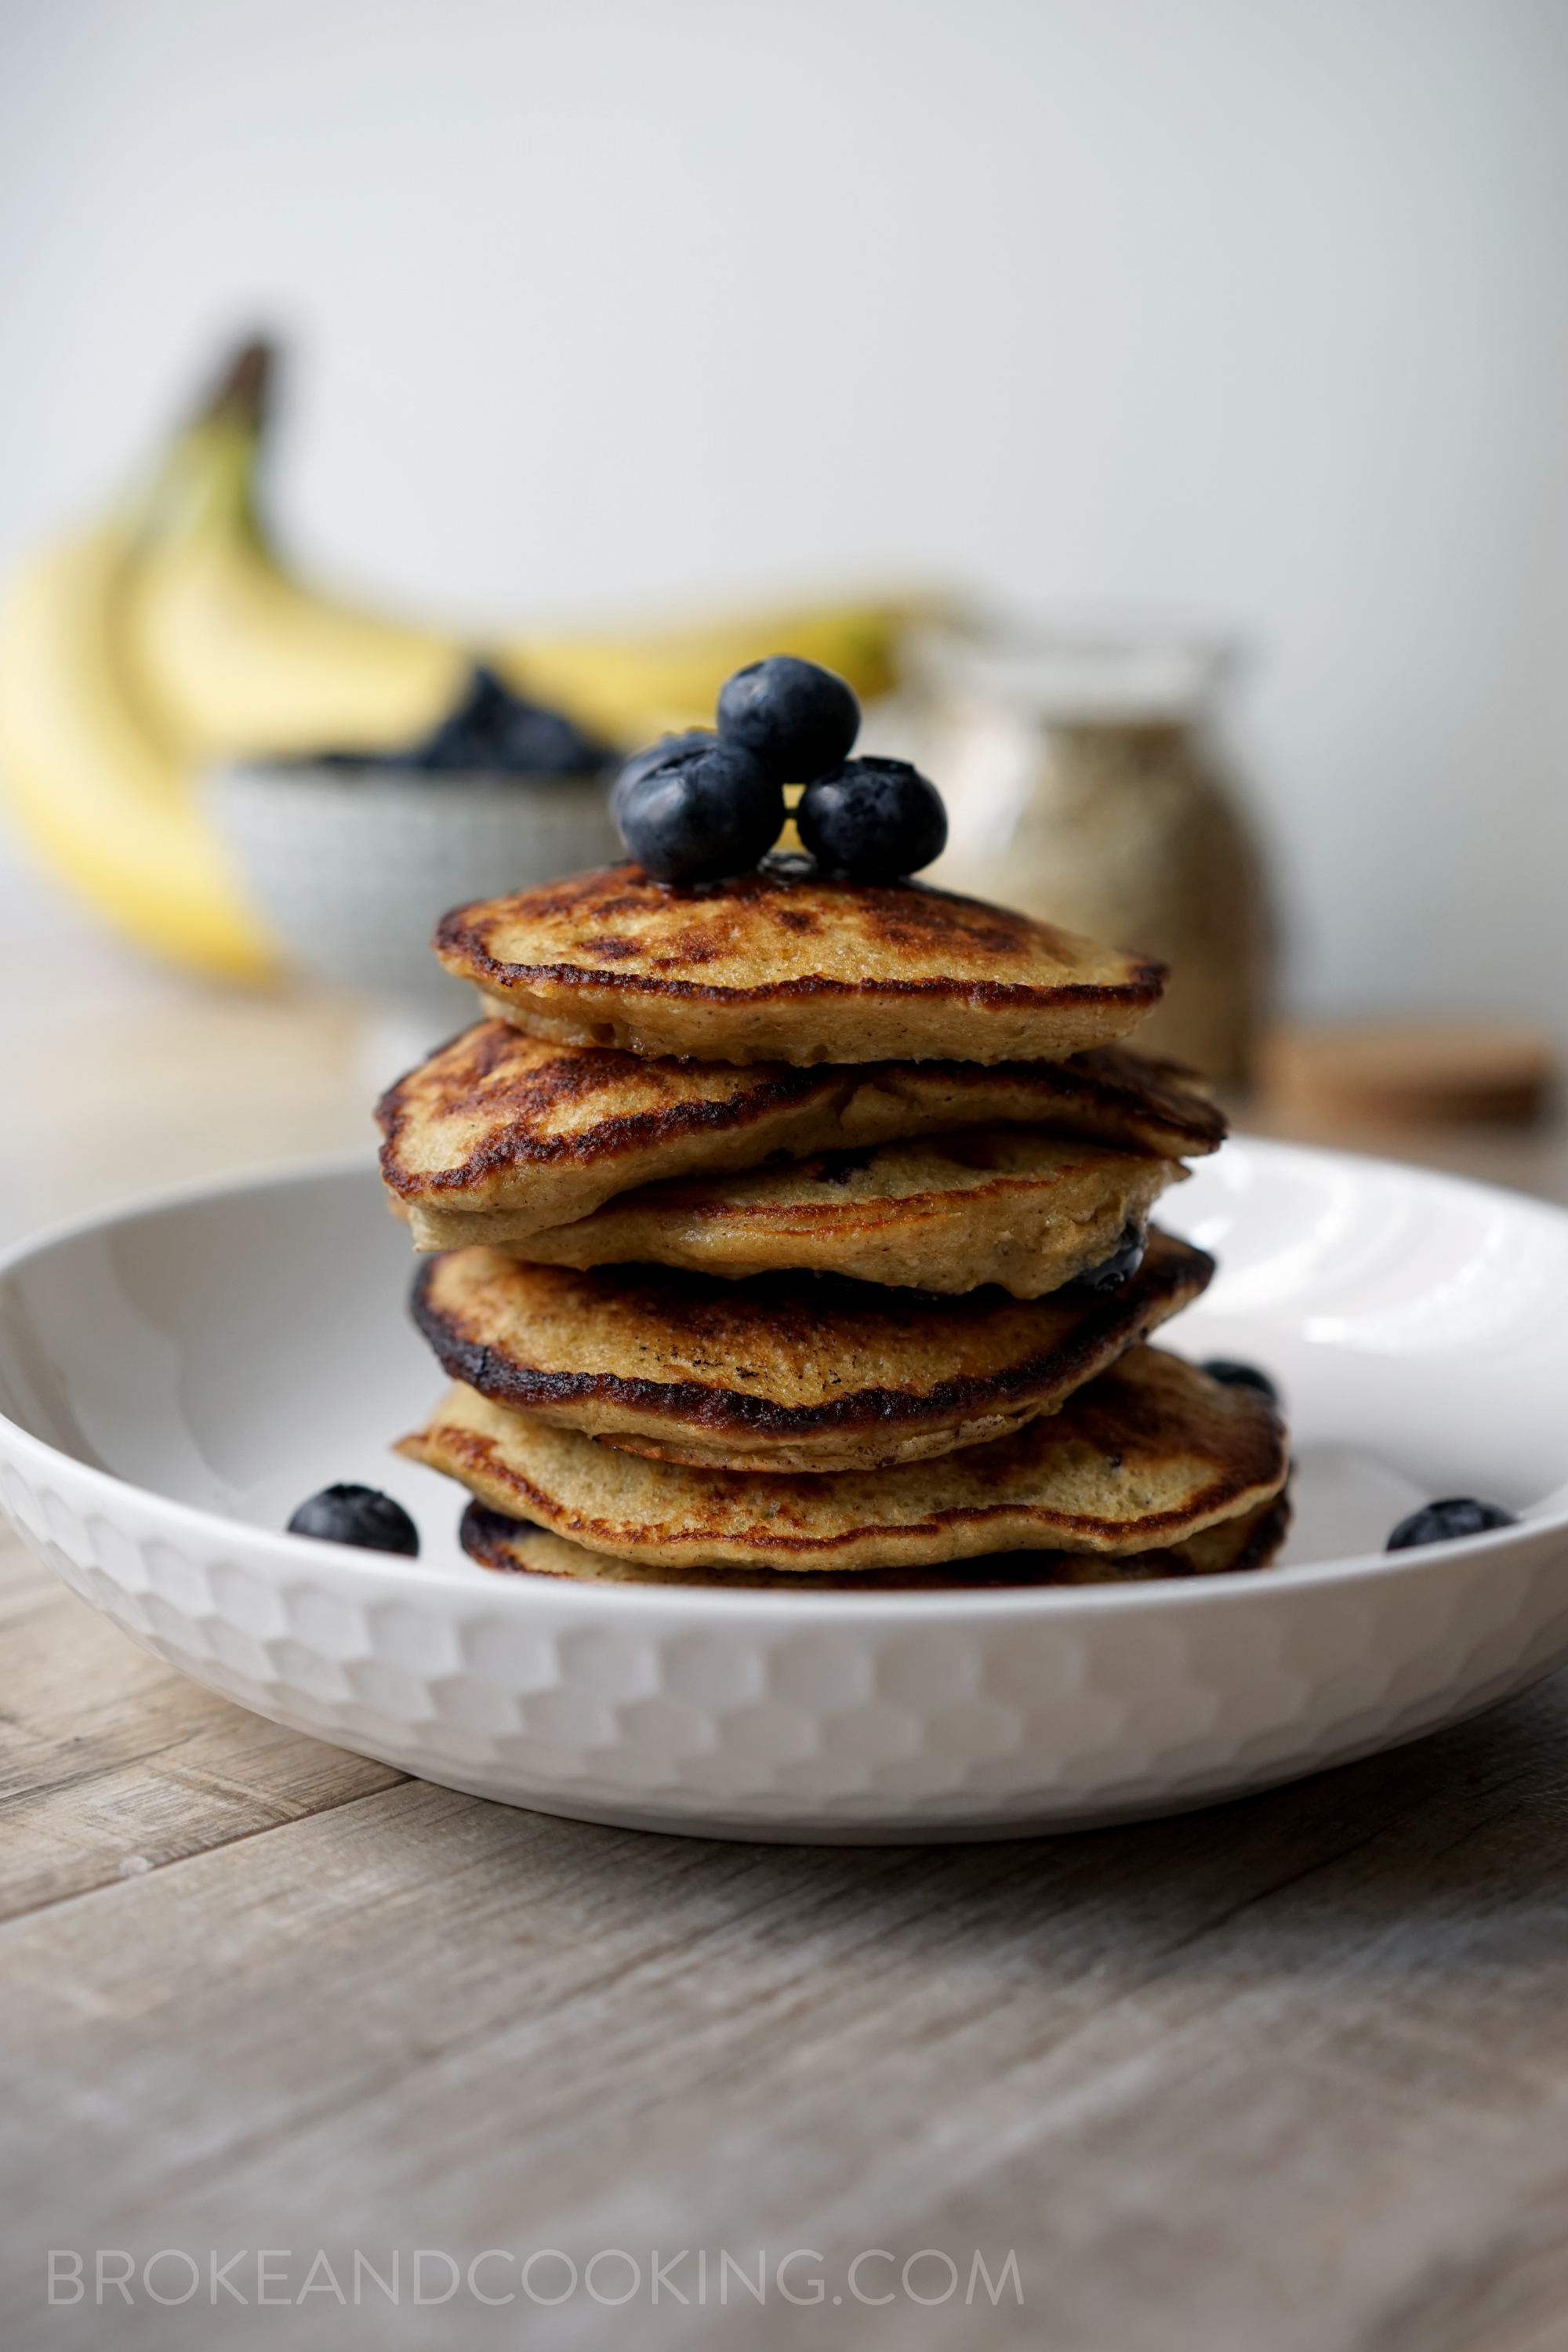 Broke and Cooking Healthy Banana Oat Pancakes 7